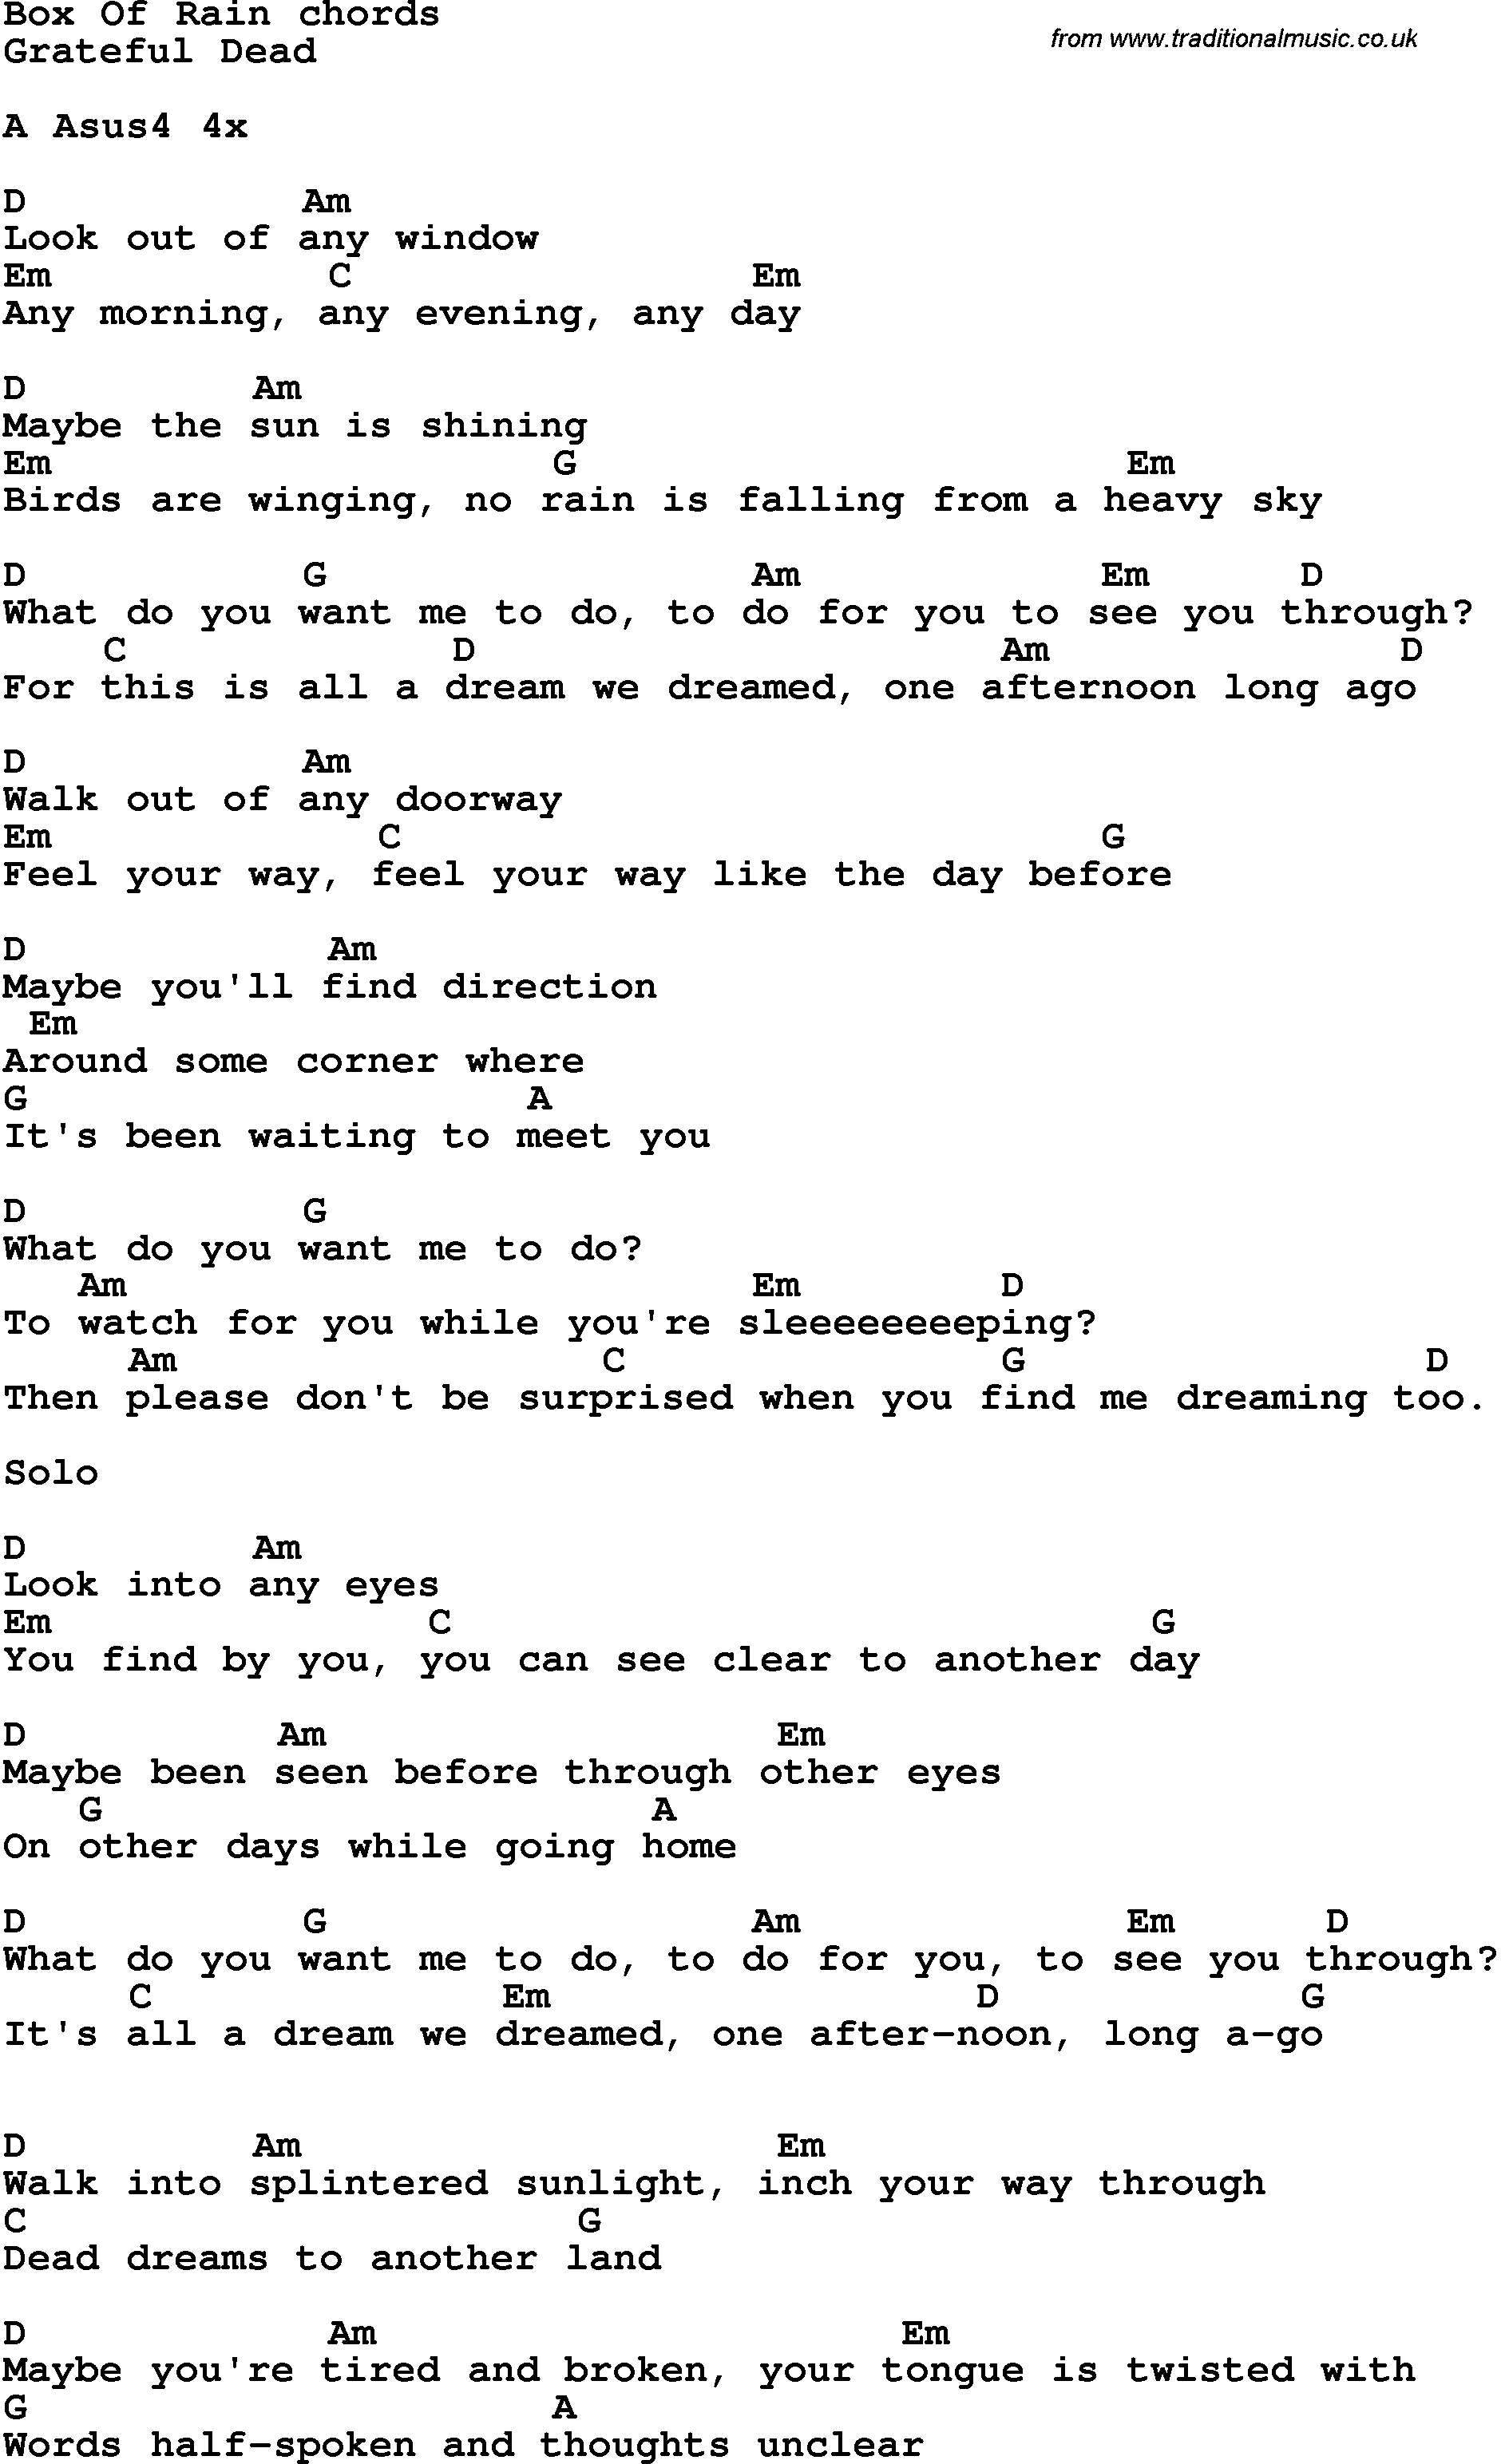 Song lyrics with guitar chords for box of rain yas pinterest song lyrics with guitar chords for box of rain hexwebz Choice Image